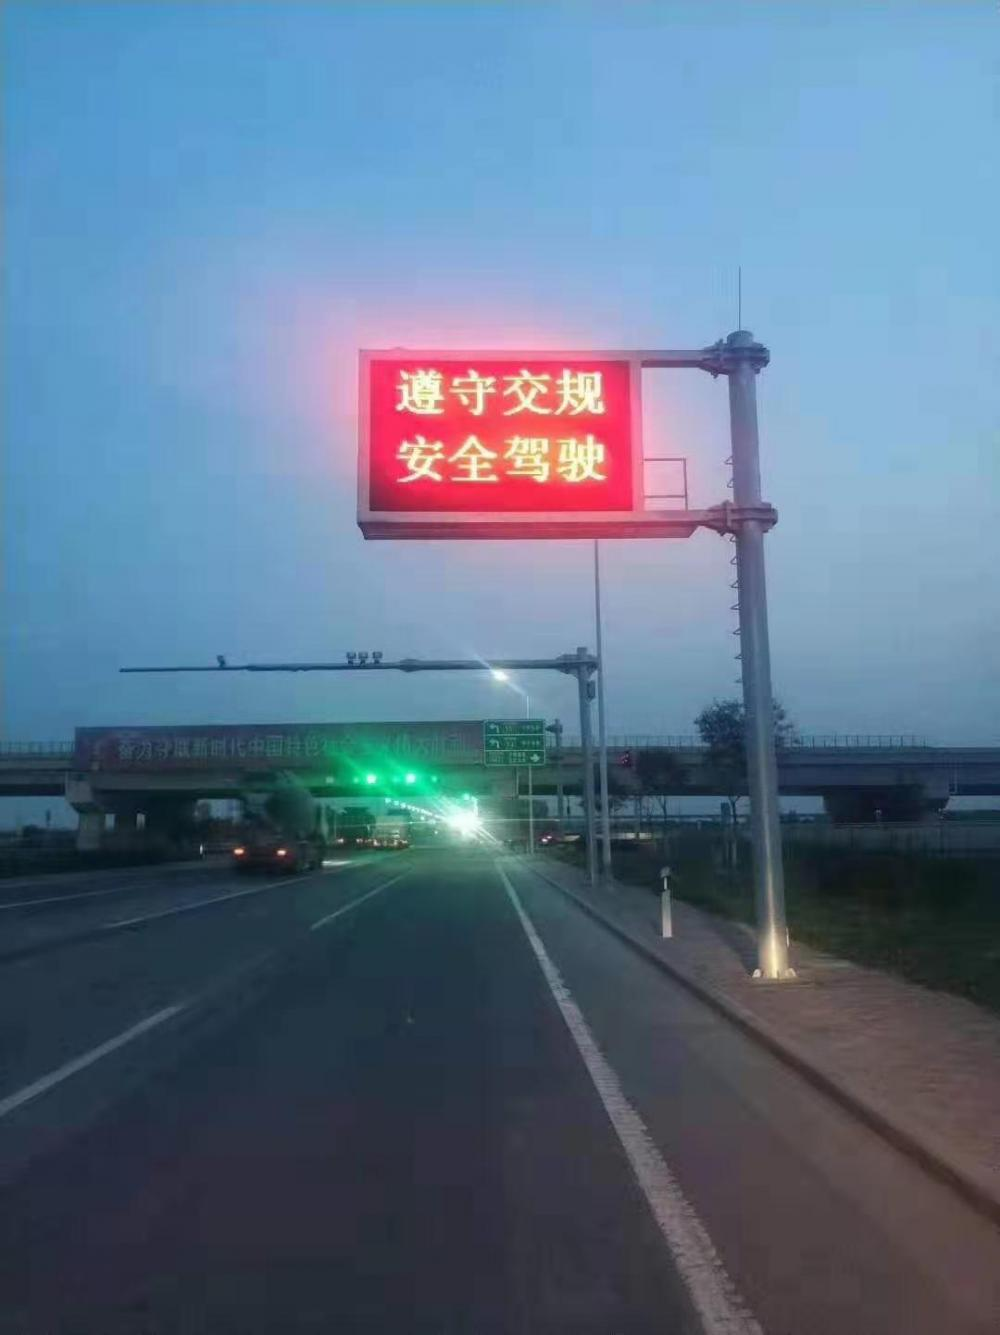 Traffic Guidance Led Display